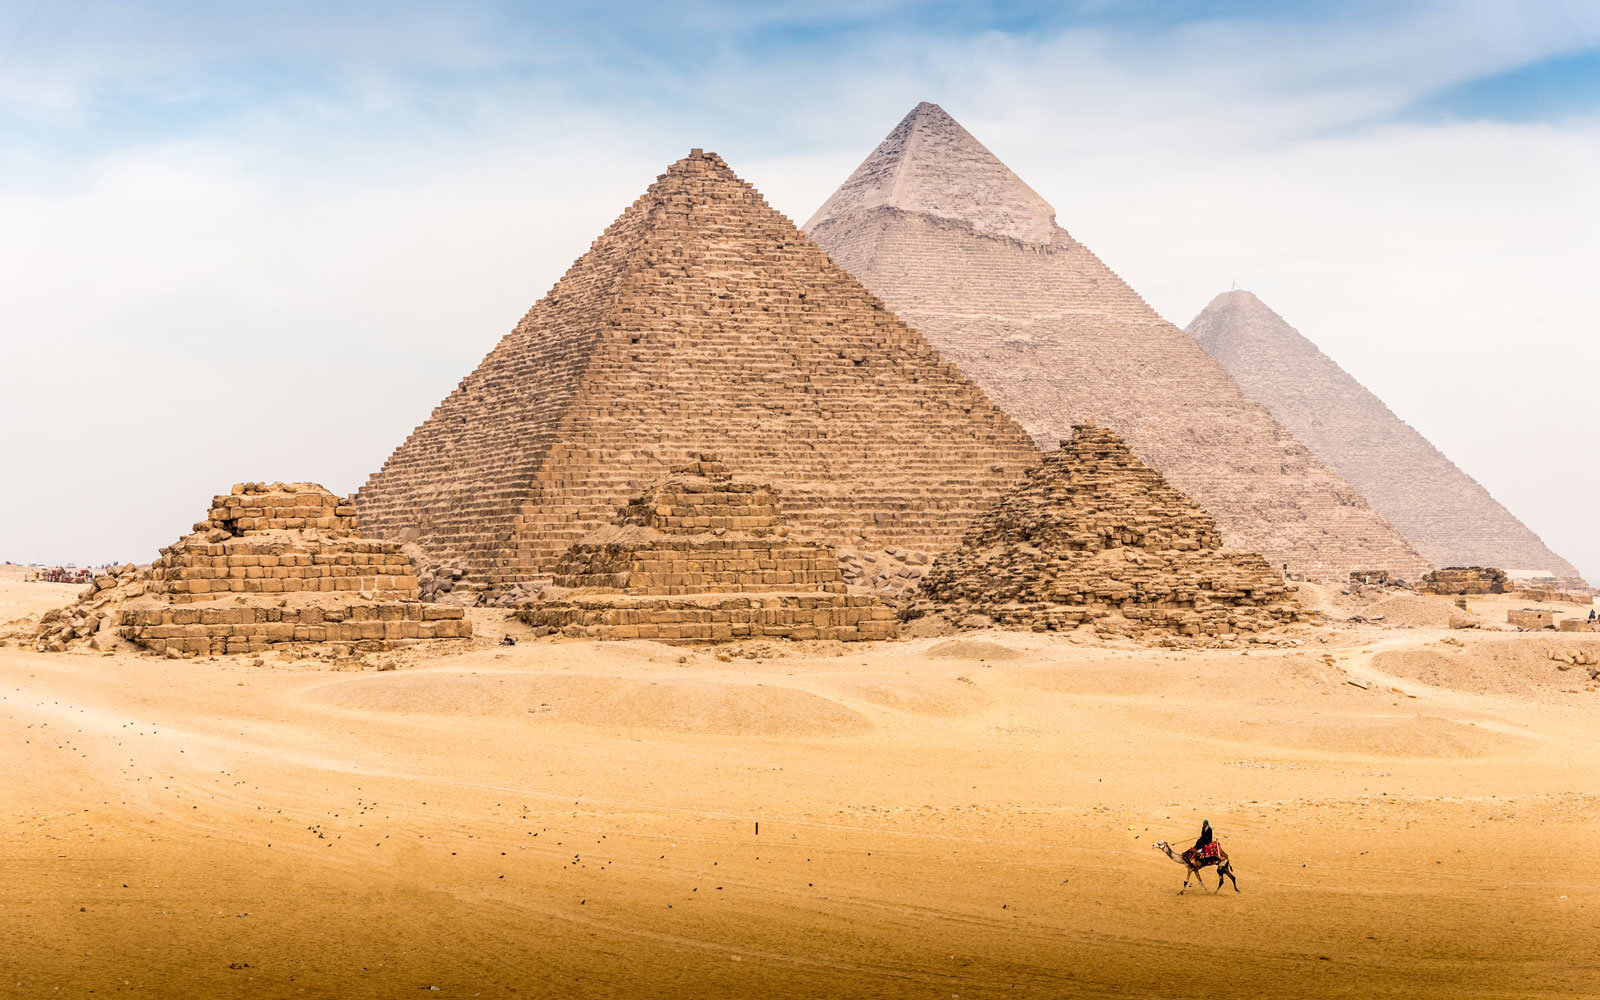 The newly discovered village predates the pyramids of Giza.